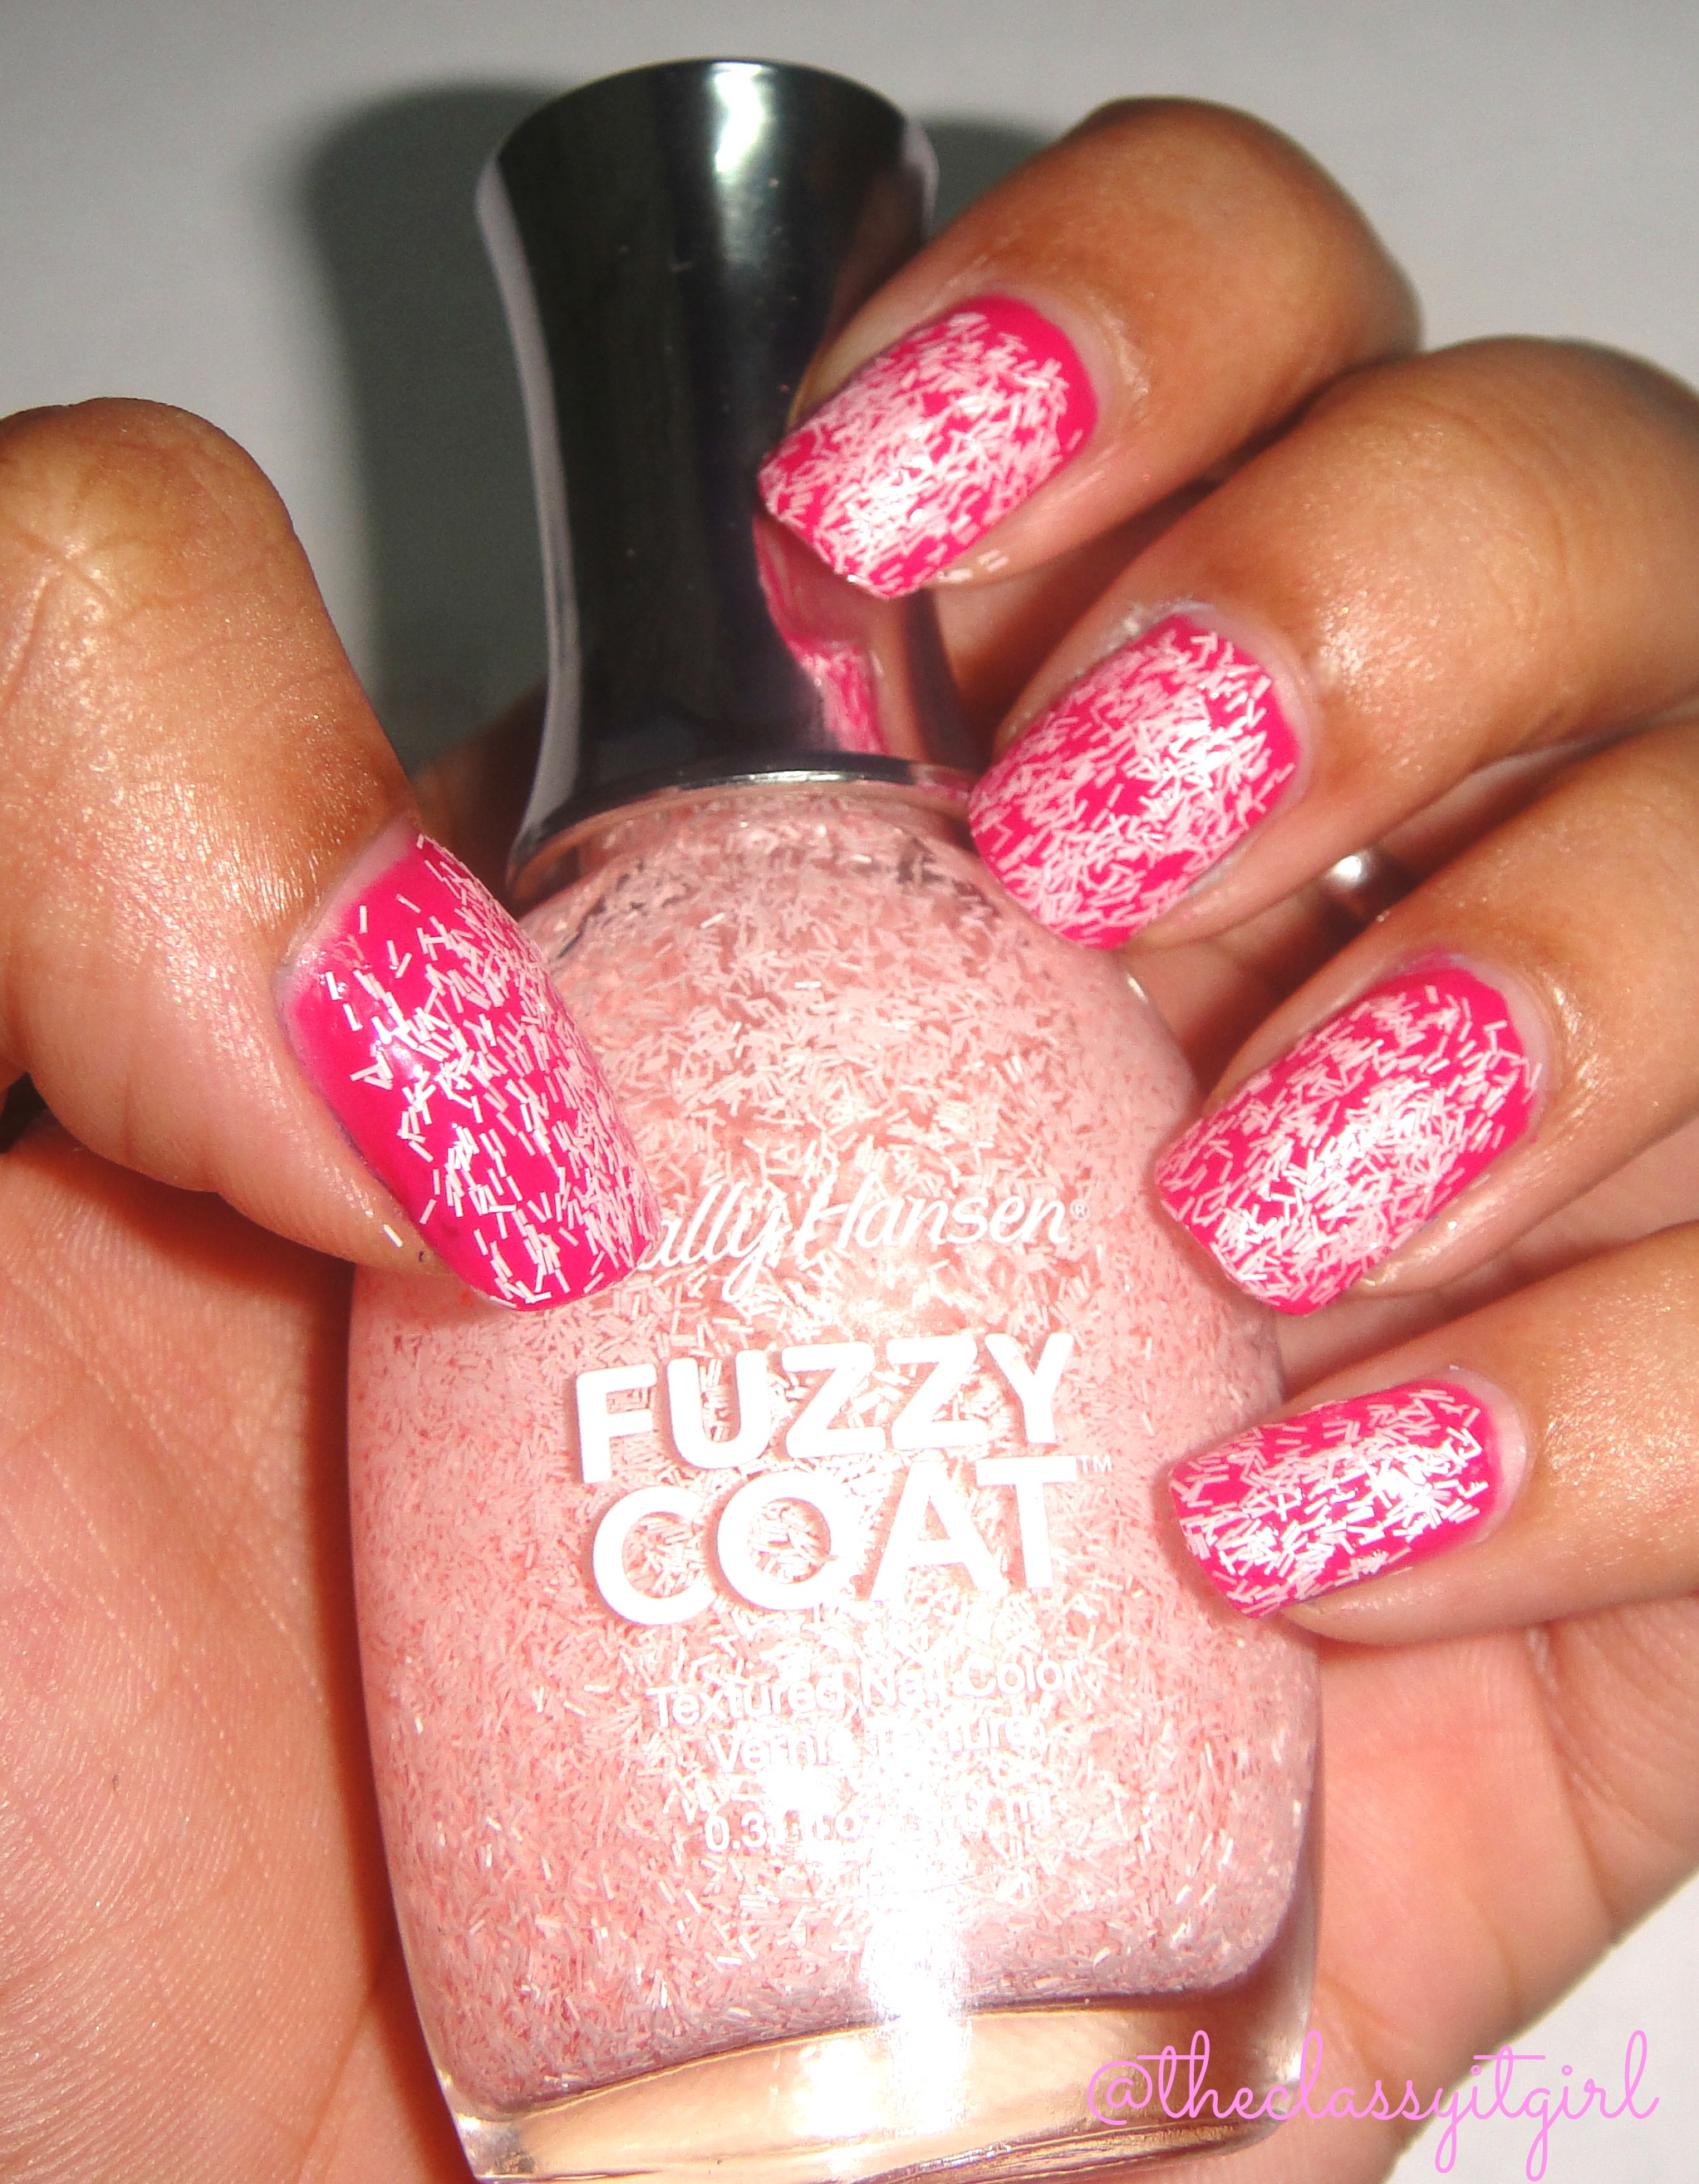 Sally Hansen Fuzzy Coat Nail Polish Review & Demo! | The ...